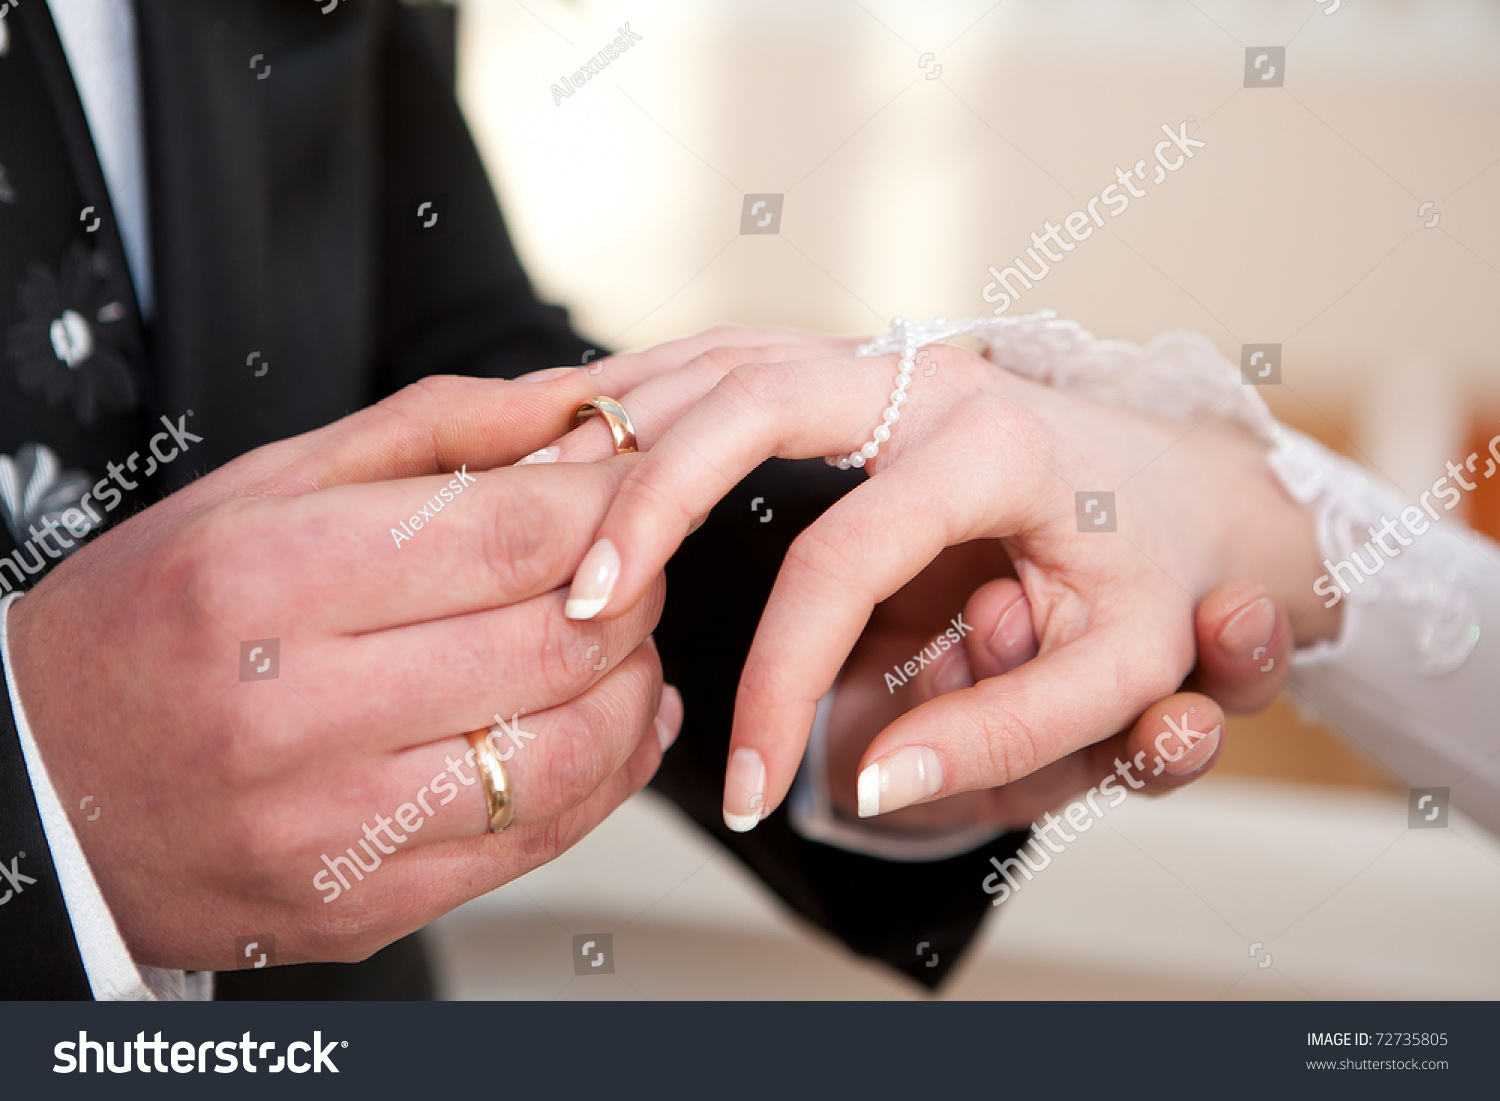 Hands Rings Stock Photo & Image (Royalty-Free) 72735805 - Shutterstock